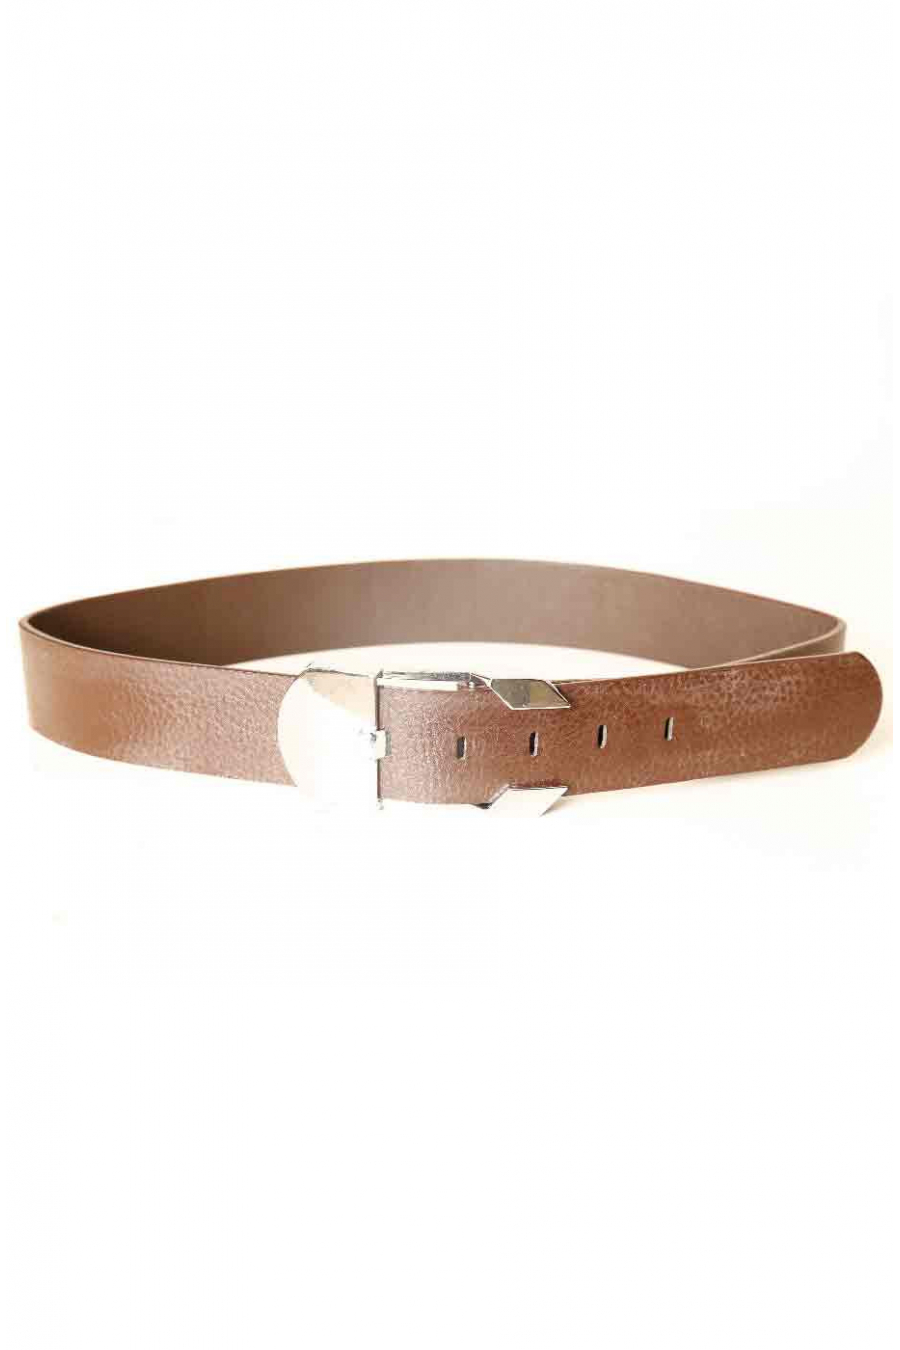 Brown belt with rectangle buckle X85-102